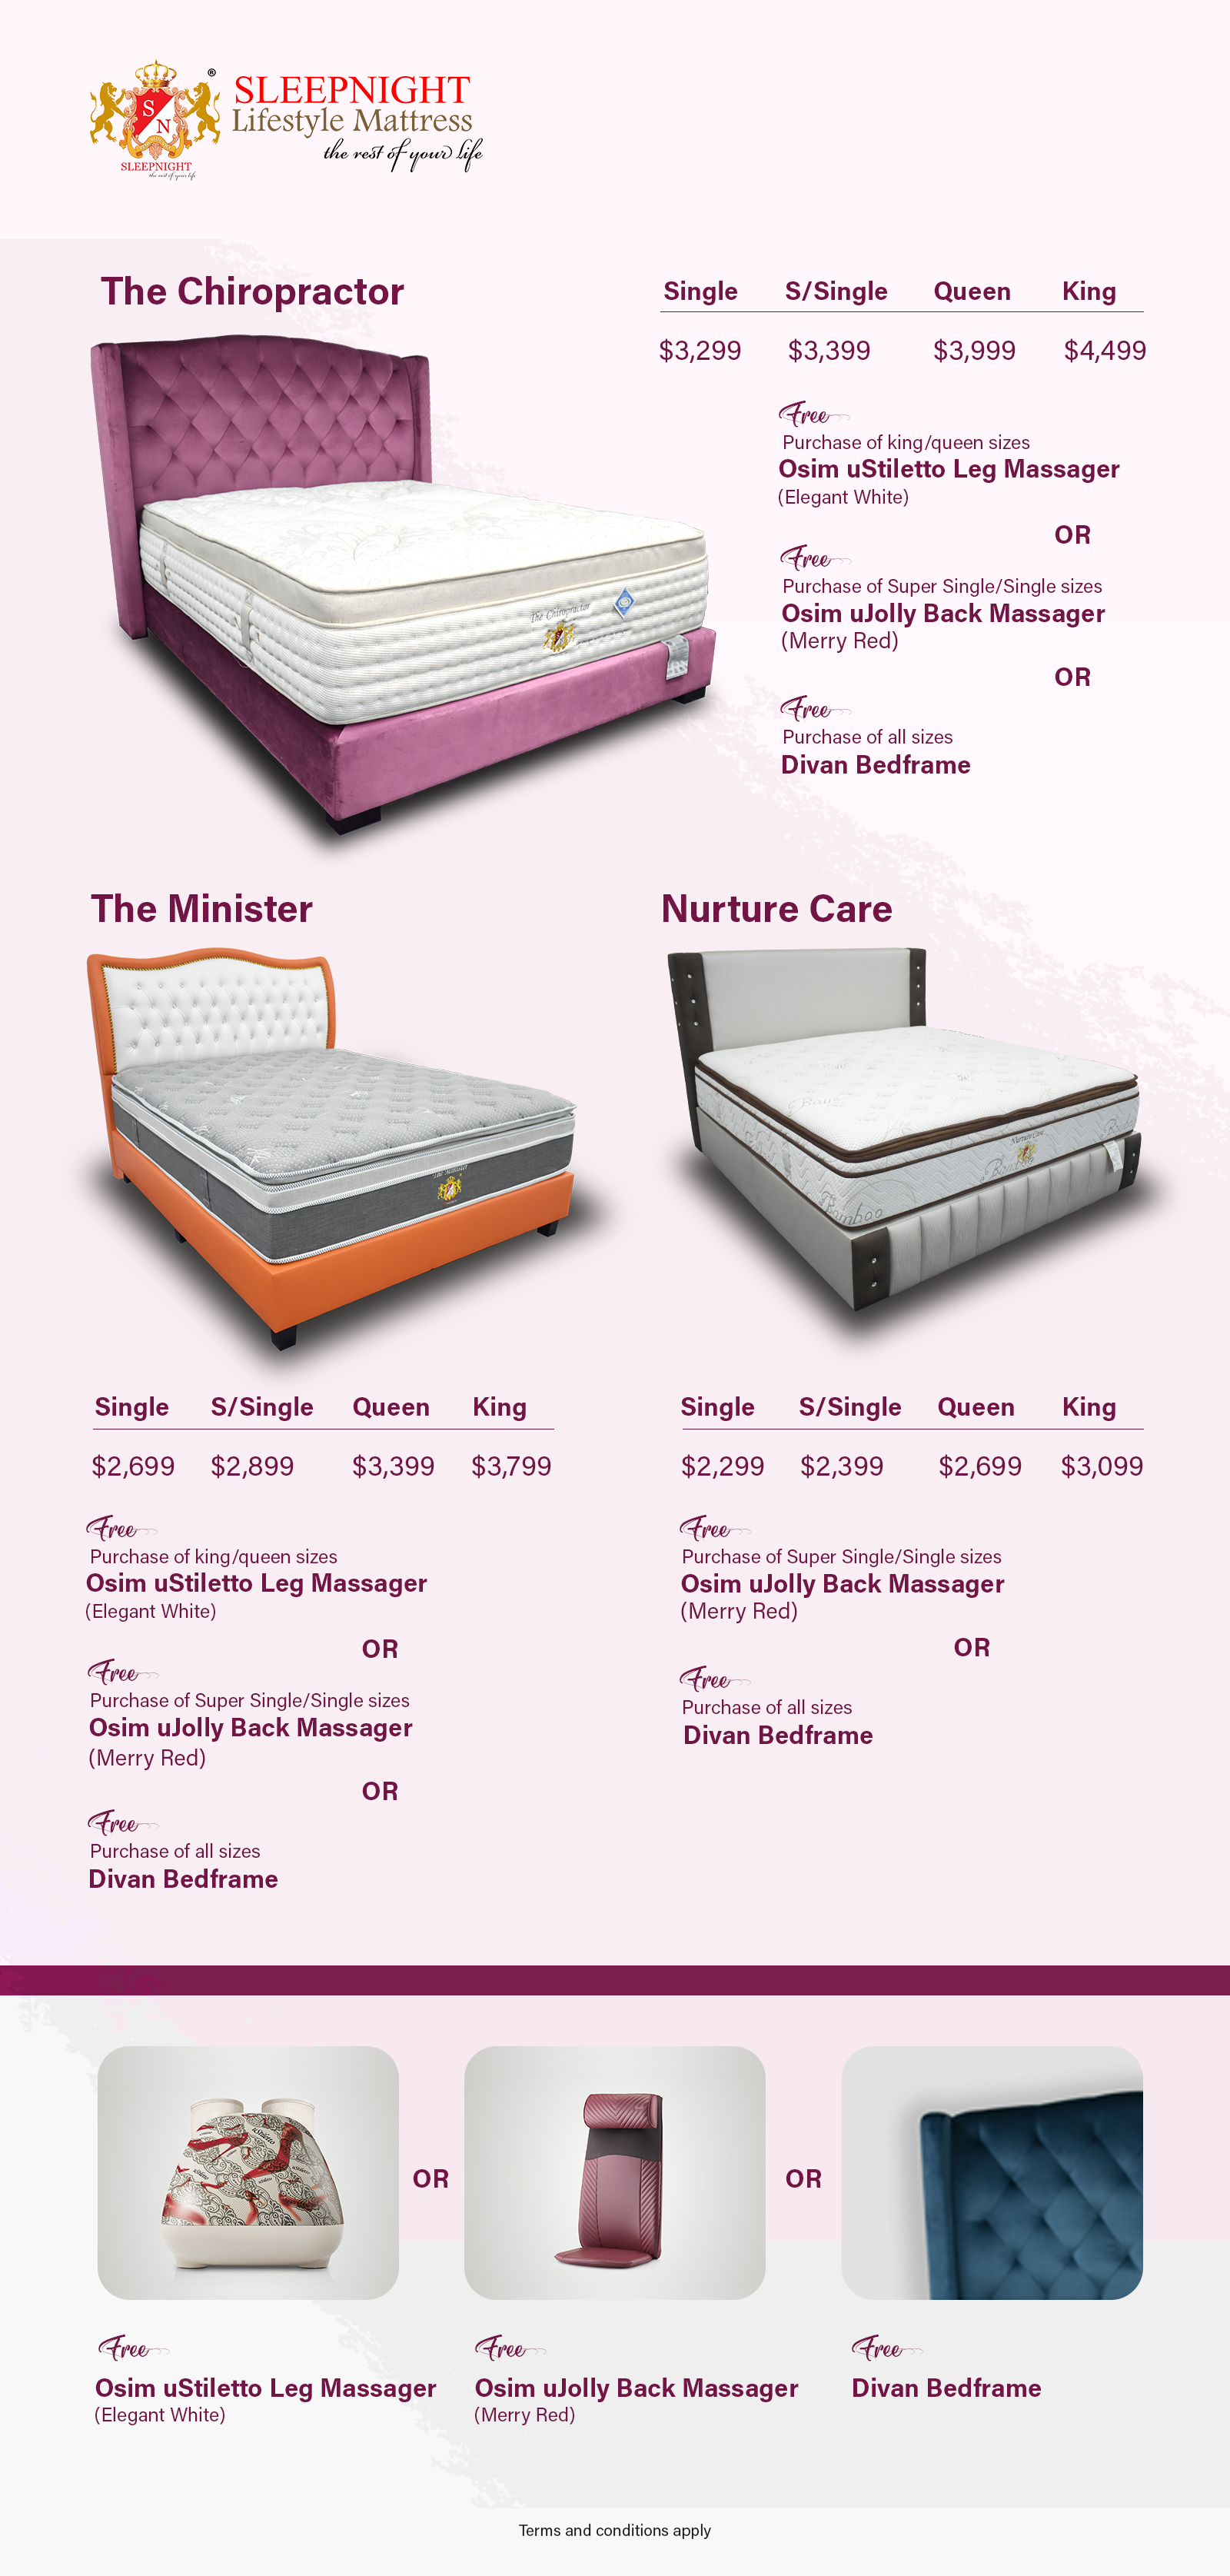 Different Sleep Night Mattresses